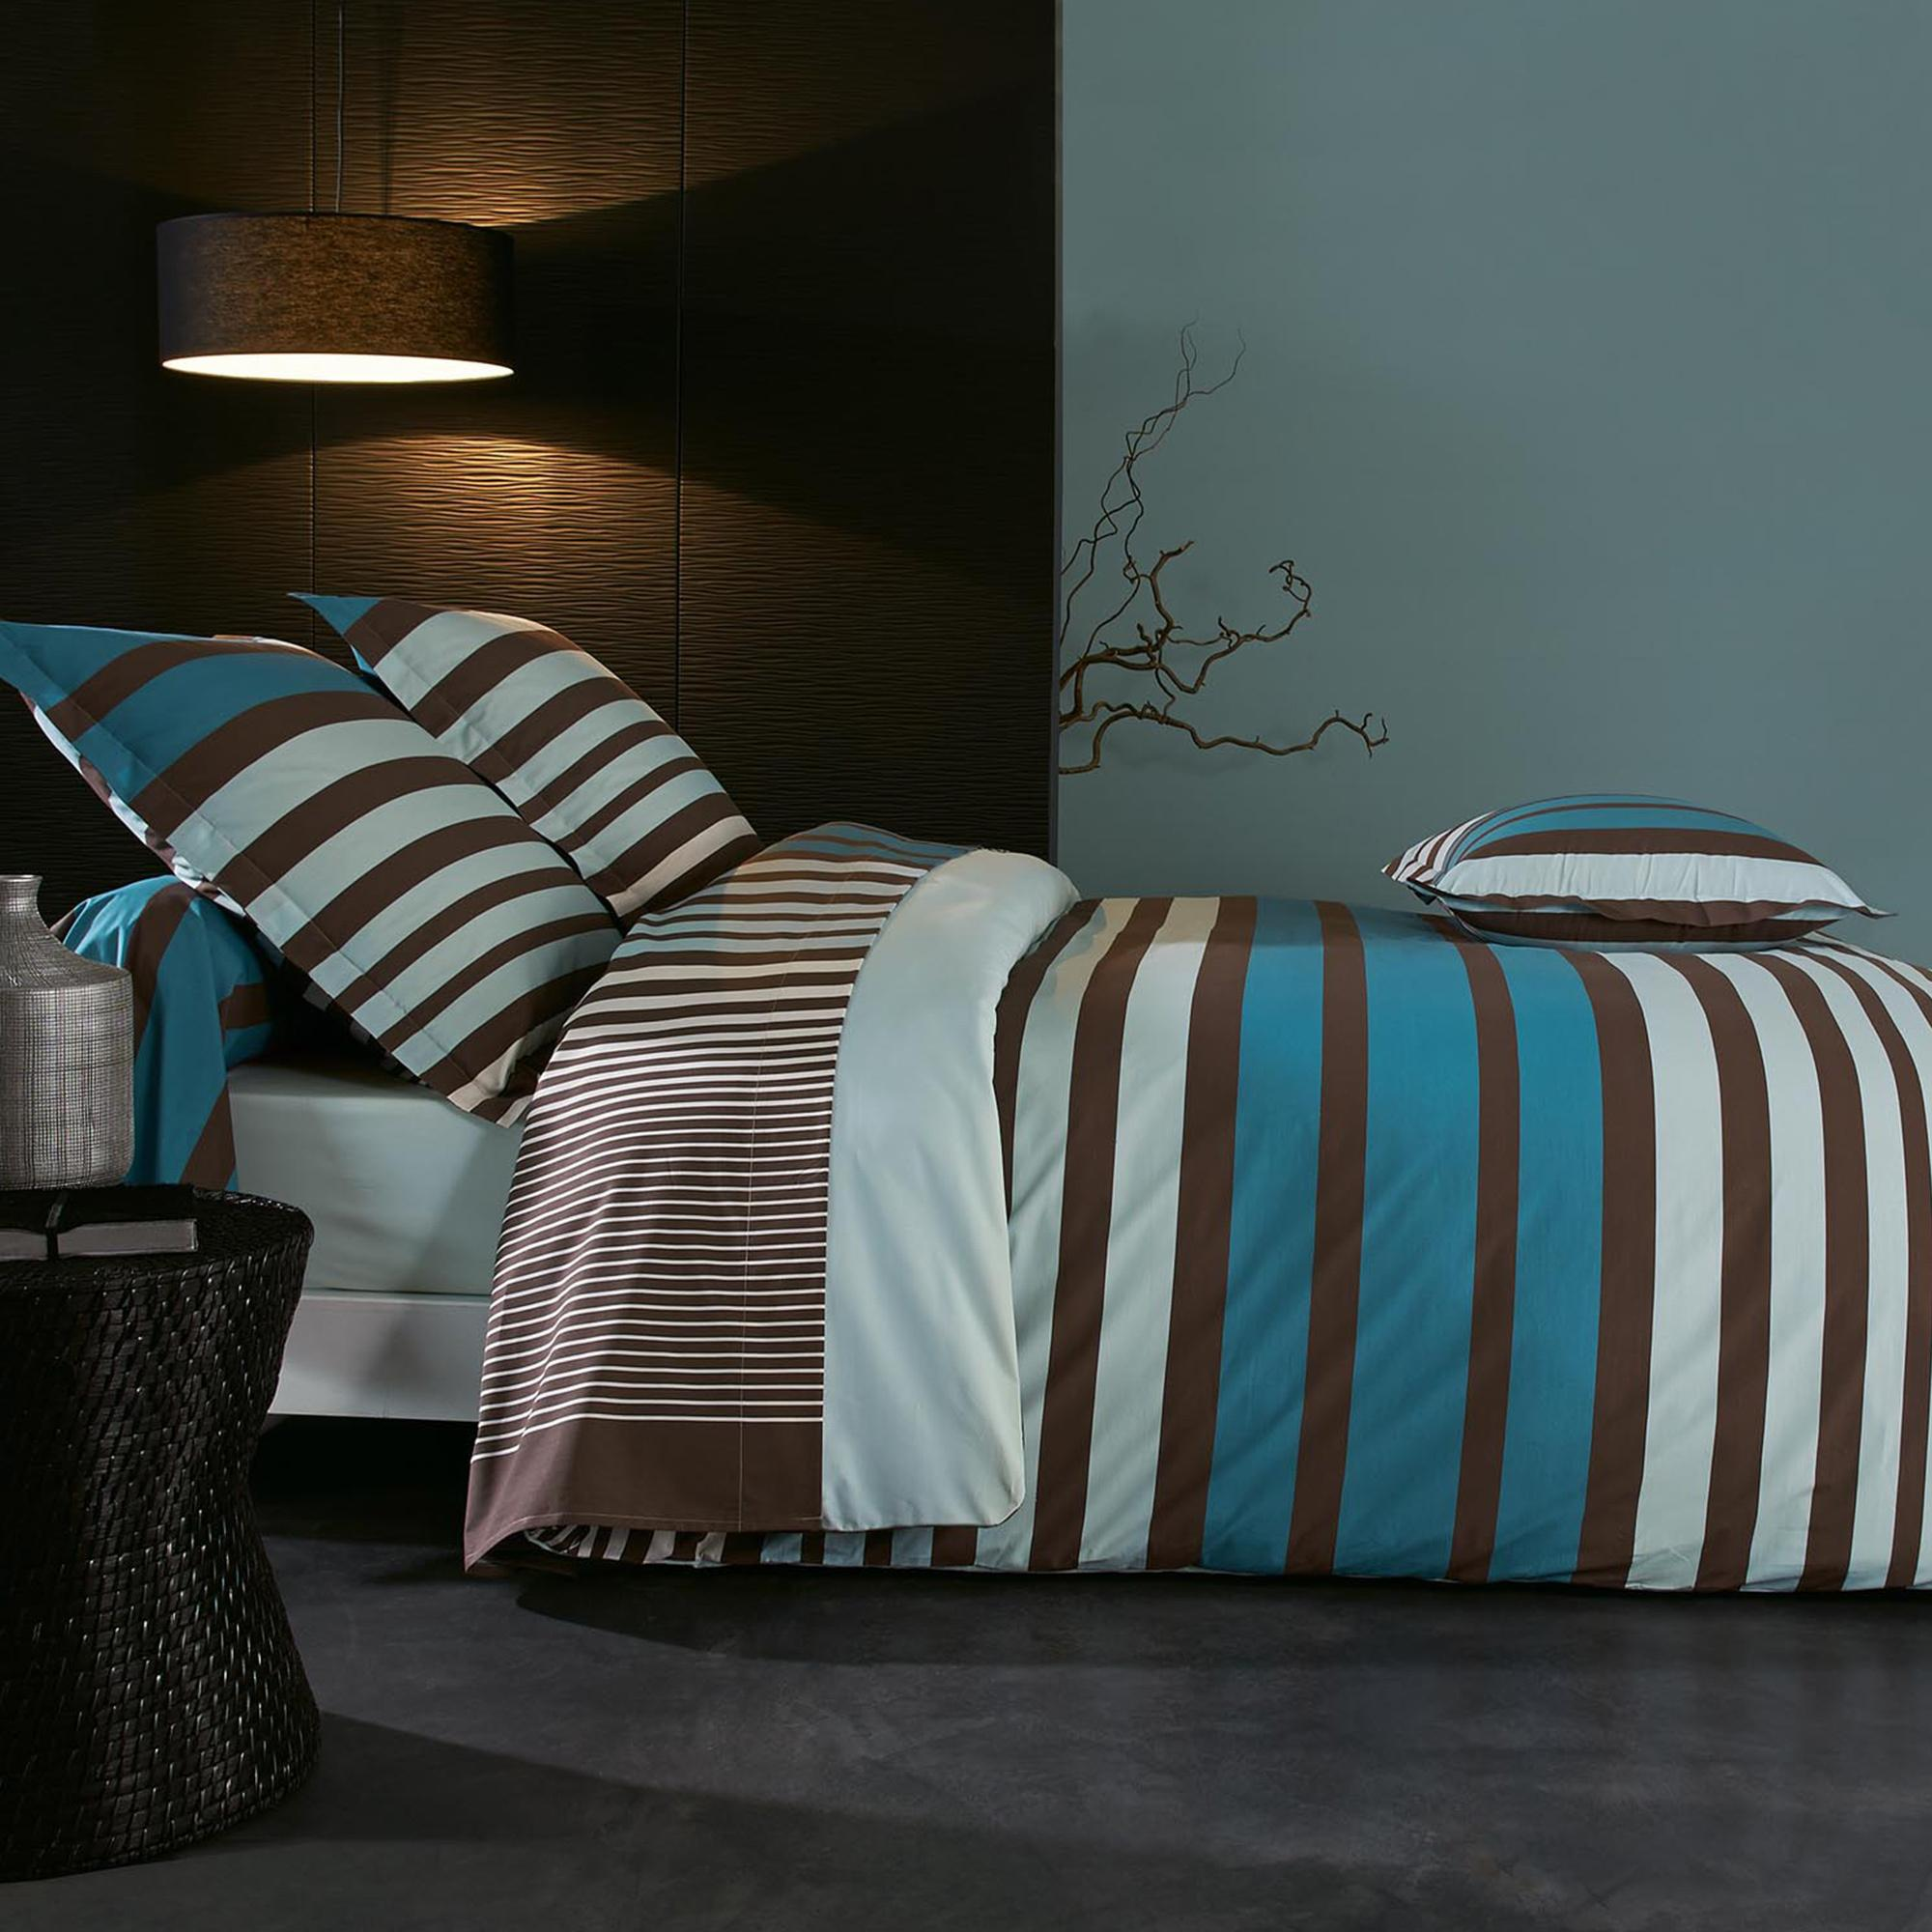 housse de couette percale pur coton peign 260x240 cm stripe bleu linnea linge de maison et. Black Bedroom Furniture Sets. Home Design Ideas